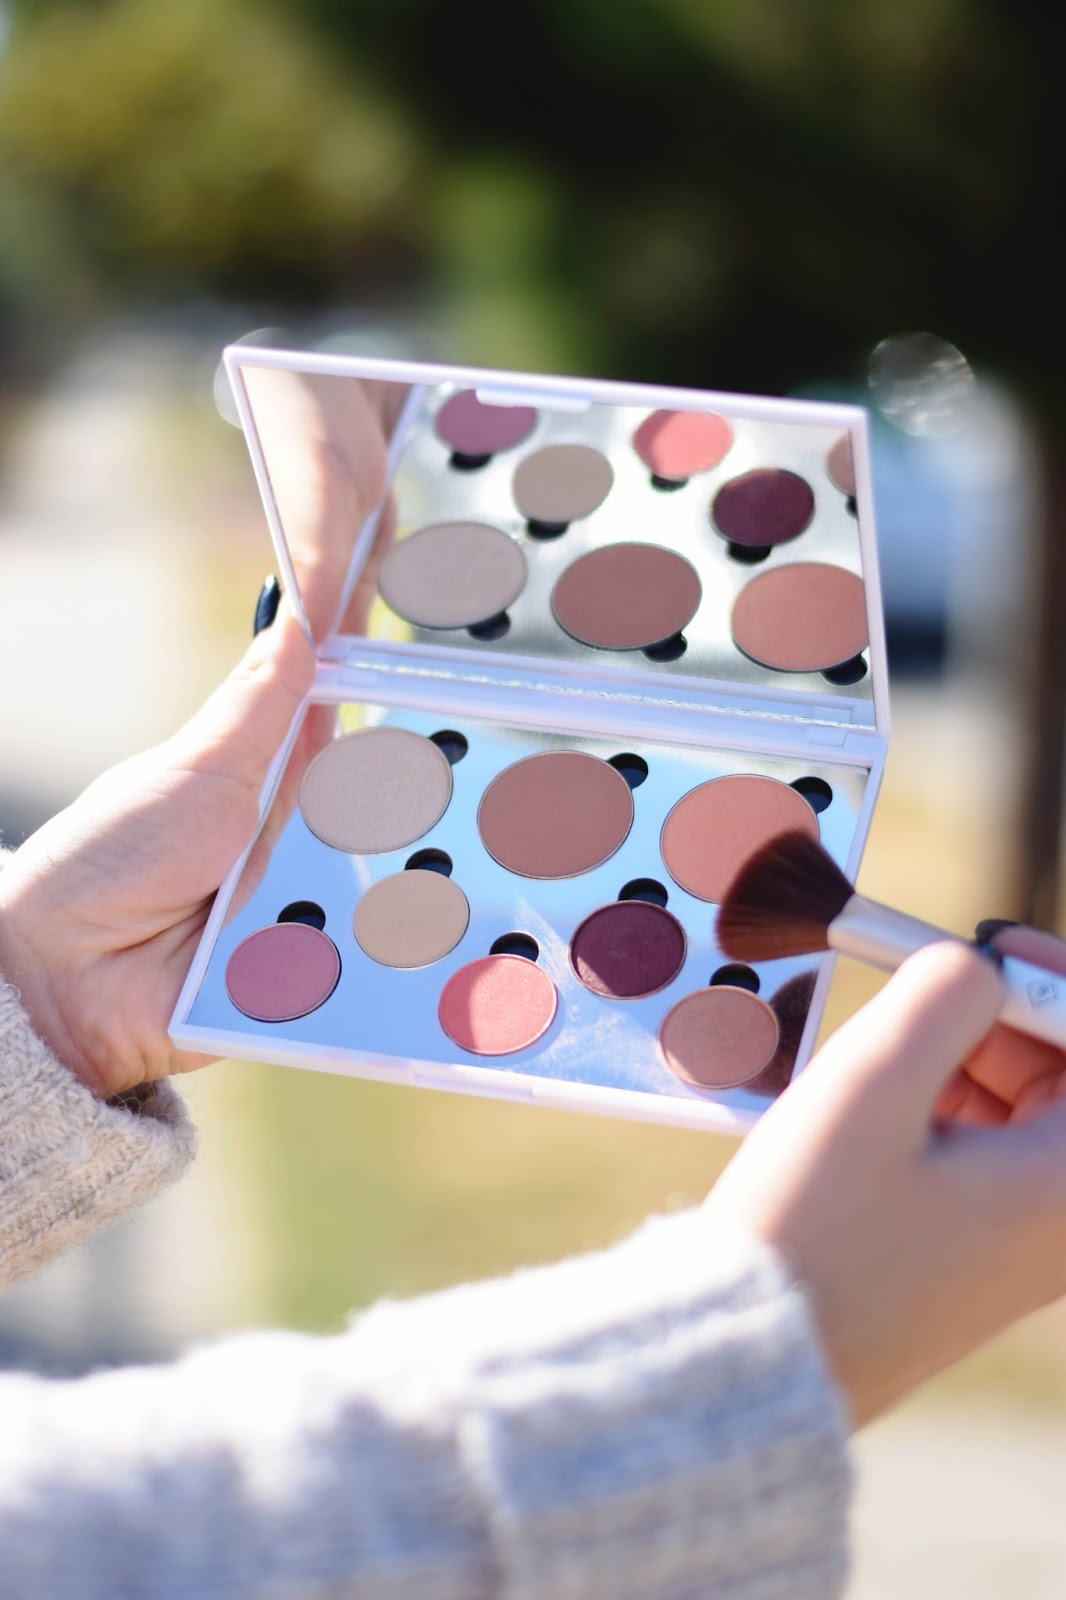 build your own makeup palette